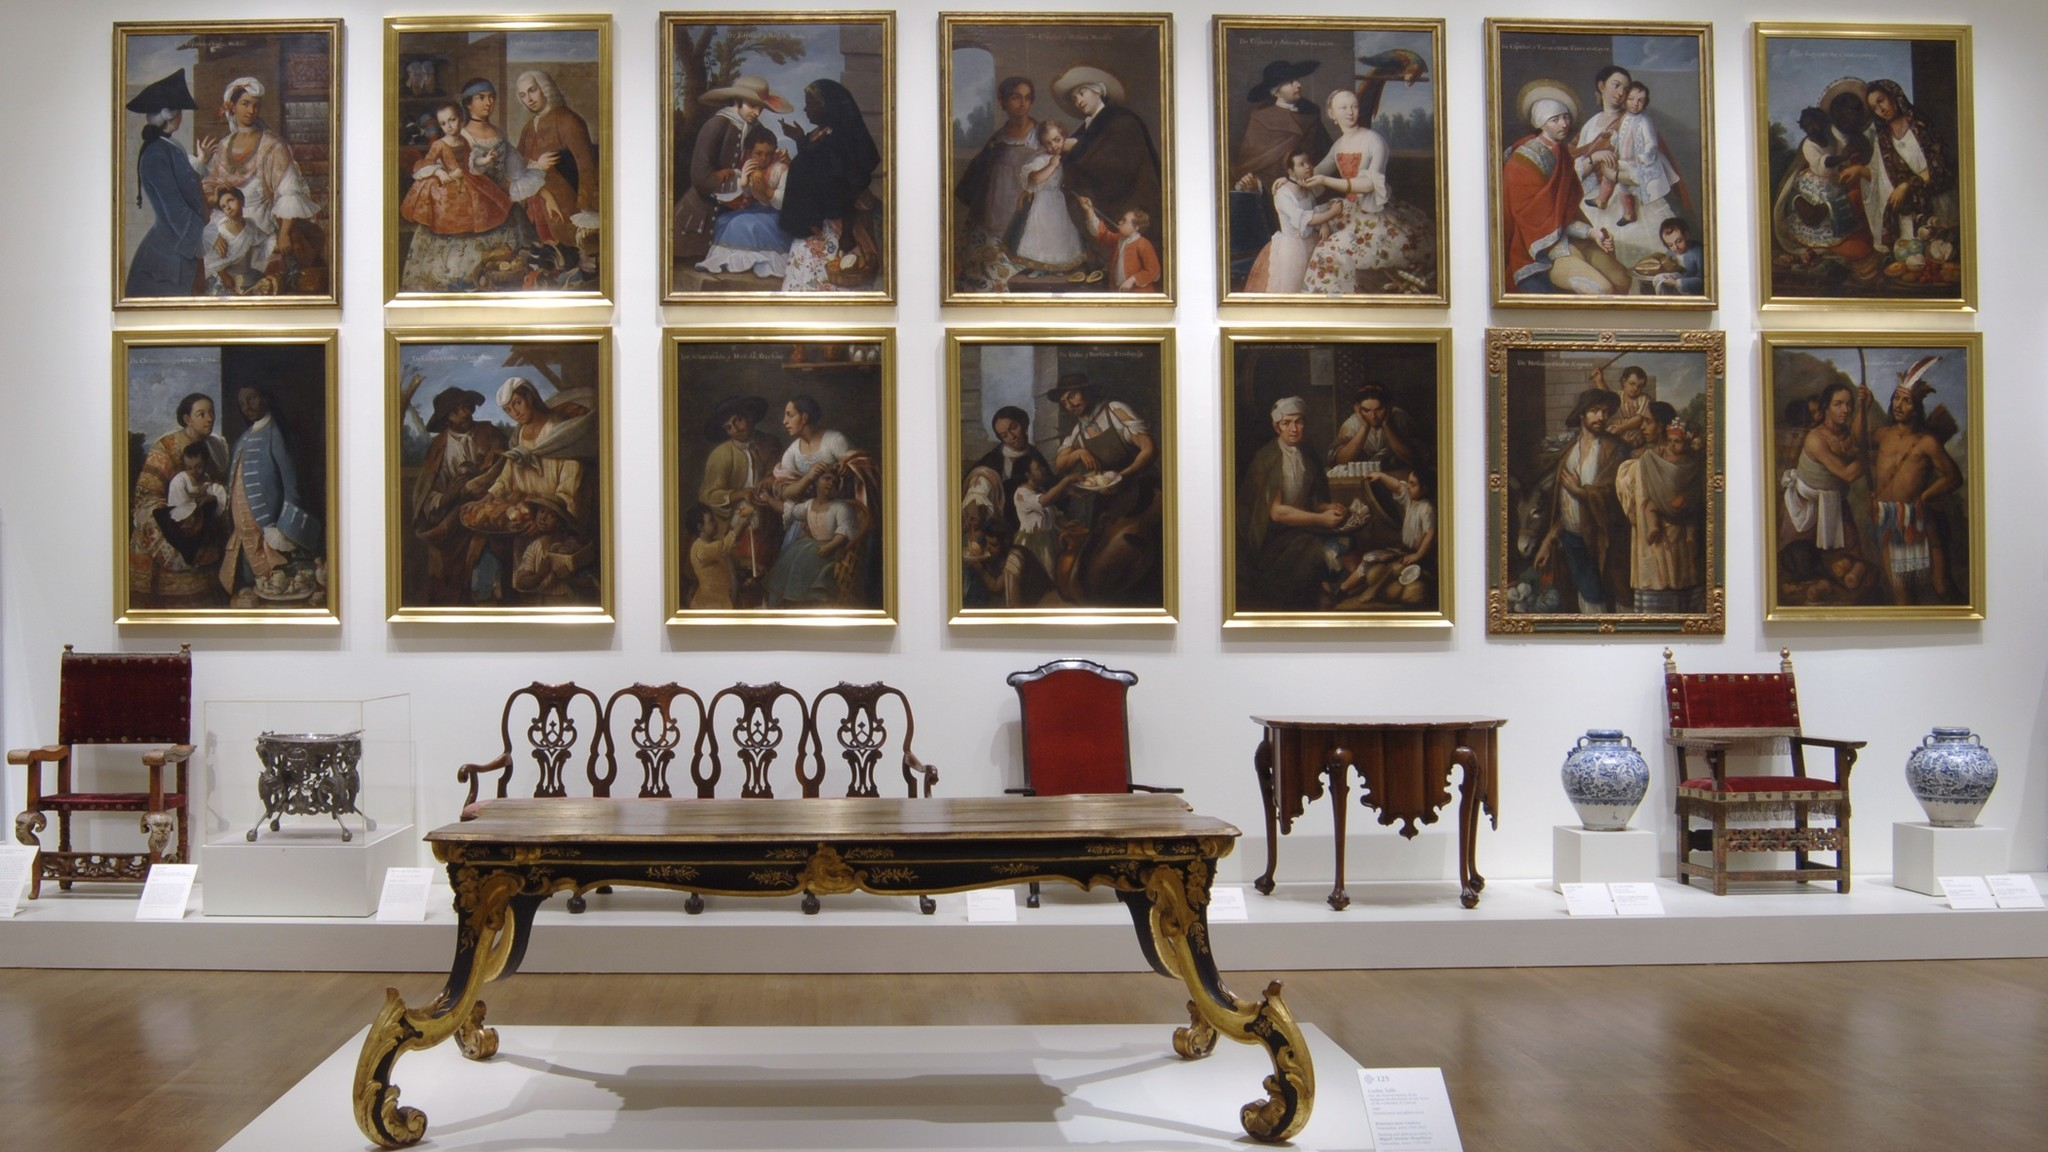 Fourteen of the 16 Cabrera paintings were reunited in a 2006 exhibition at the Philadelphia Museum of Art.